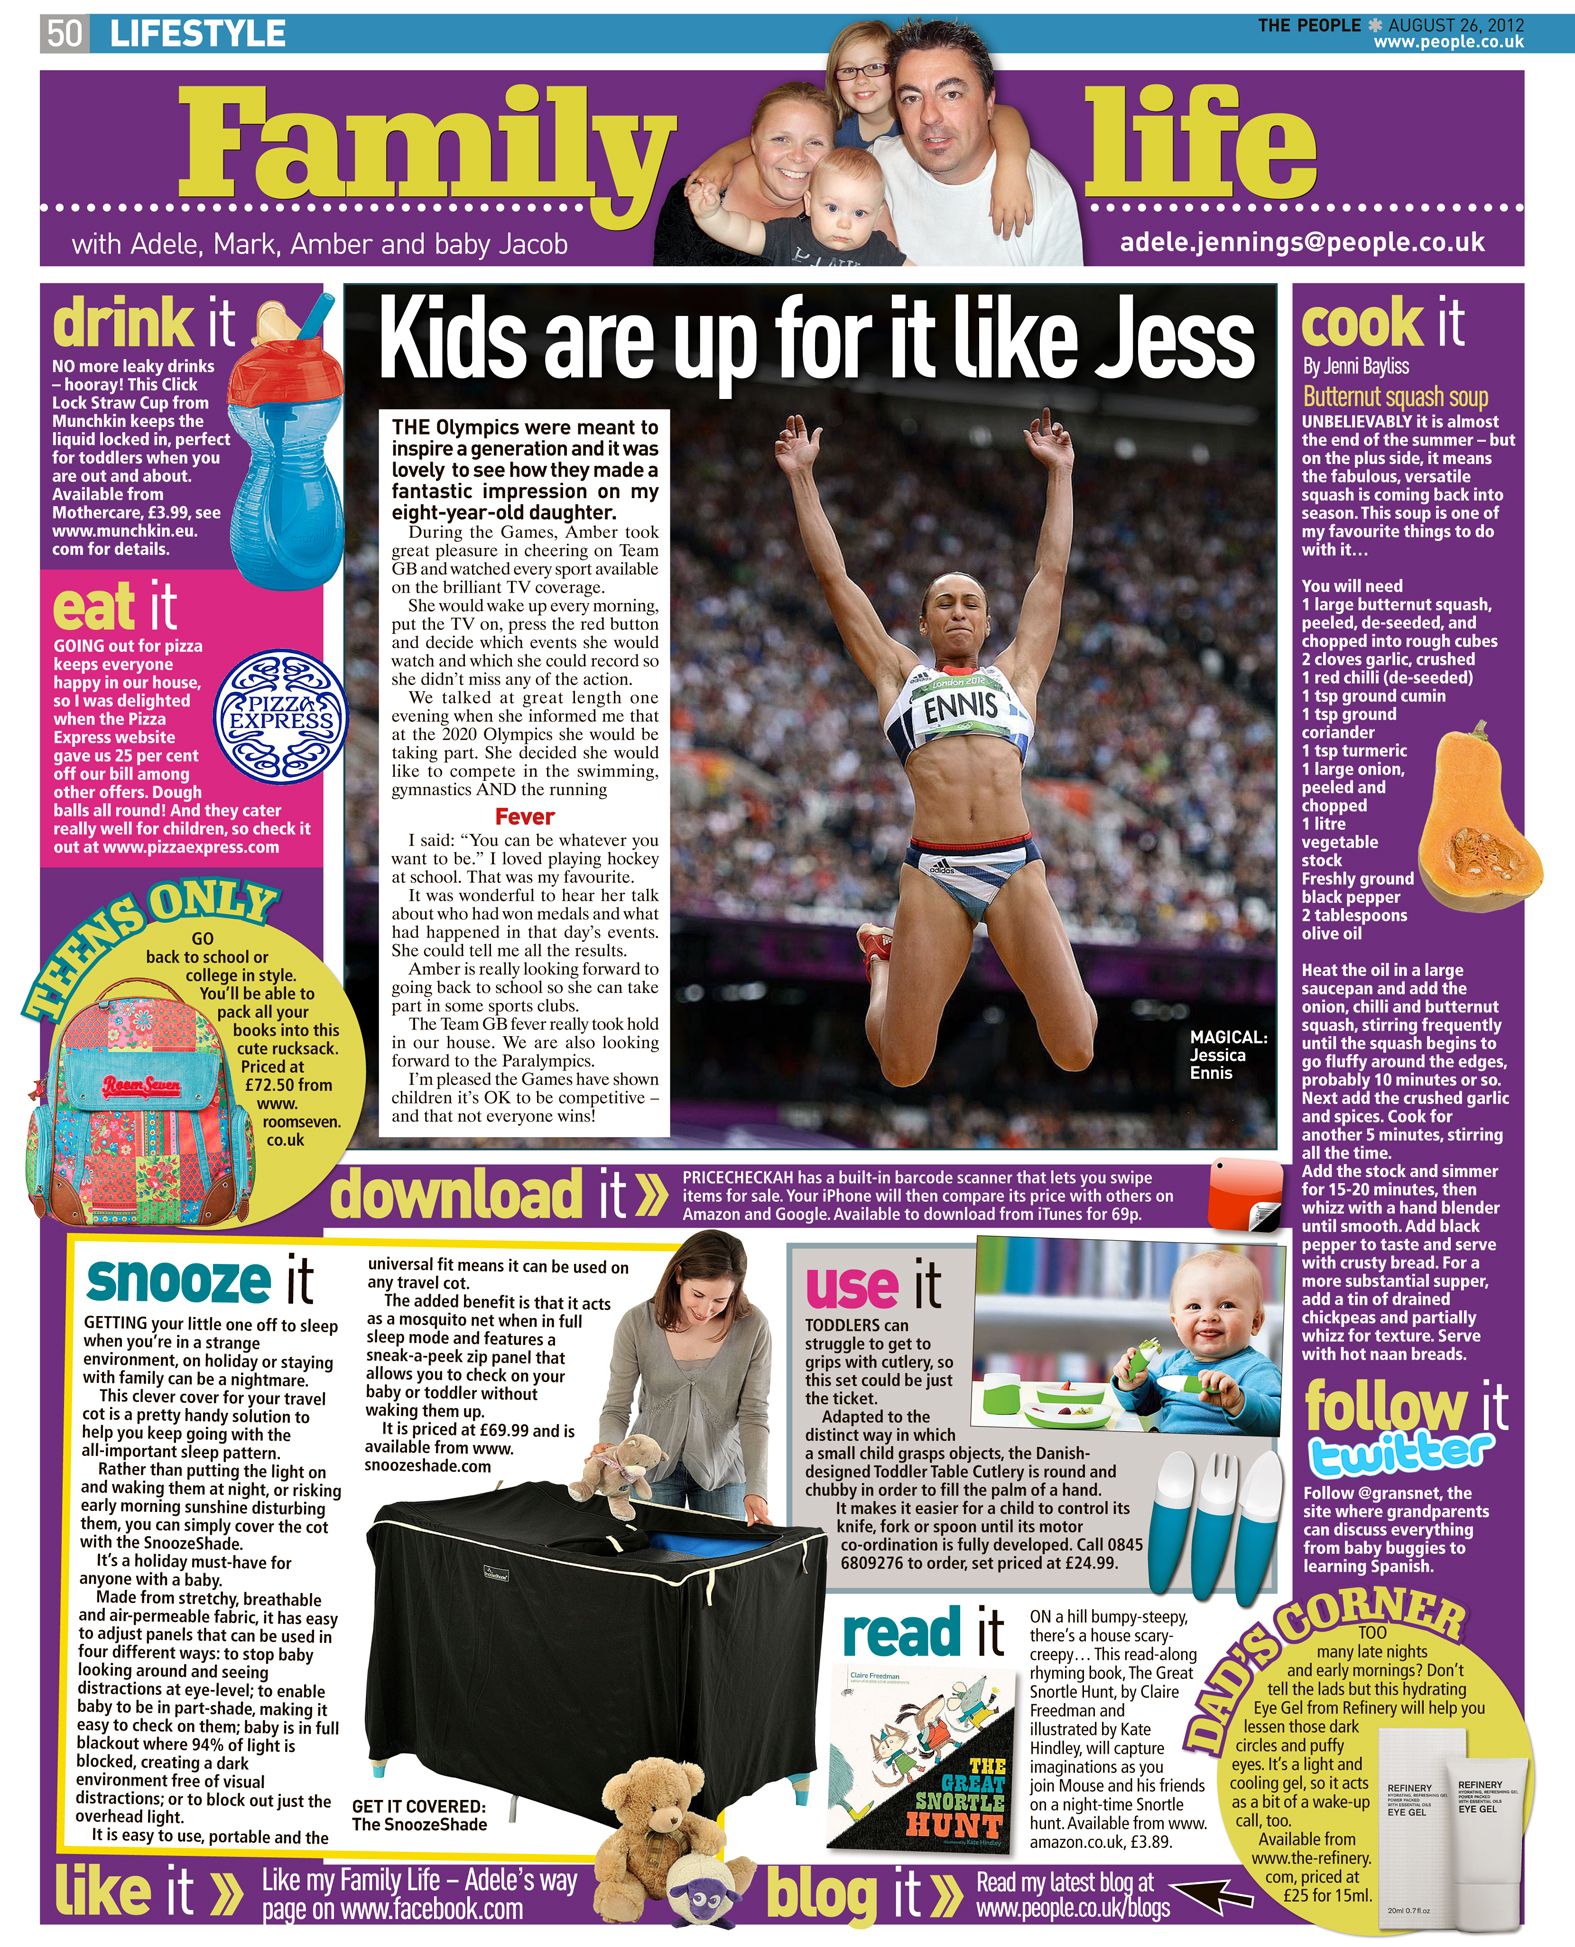 Published in The Sunday People, August 26, 2012